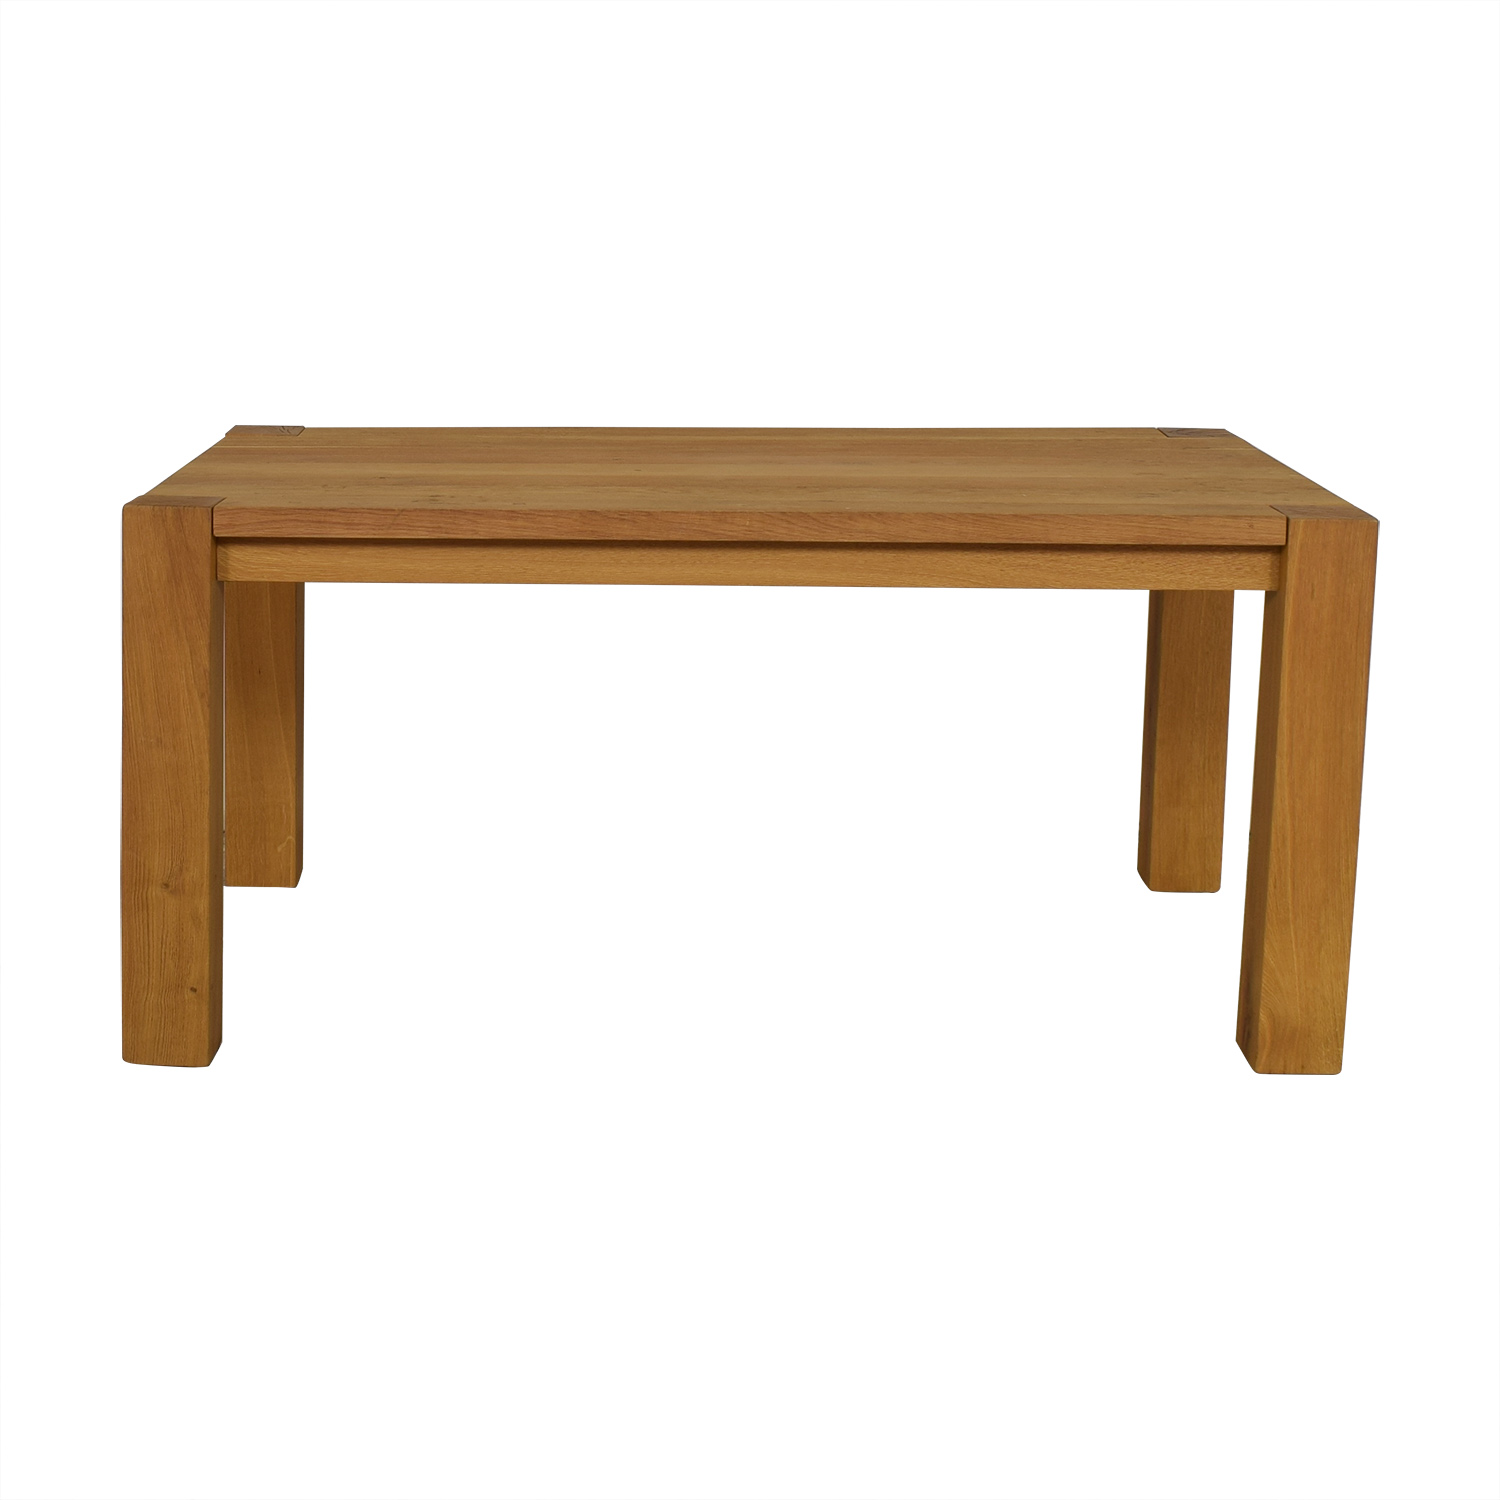 Crate & Barrel Crate & Barrel Big Sur Dining Table price